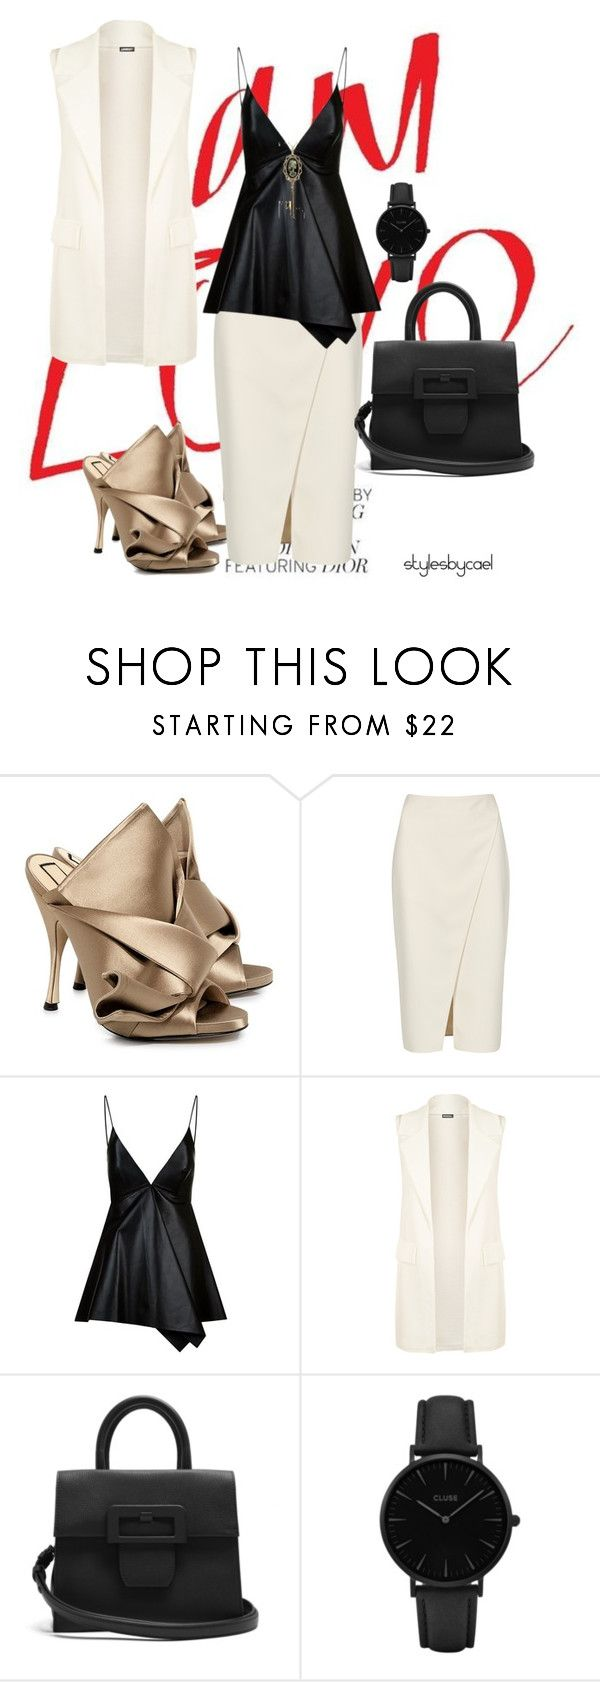 """""""#stylesbycael"""" by stylesbycael ❤ liked on Polyvore featuring N°21, Acne Studios, Valentino, WearAll, Maison Margiela and CLUSE"""